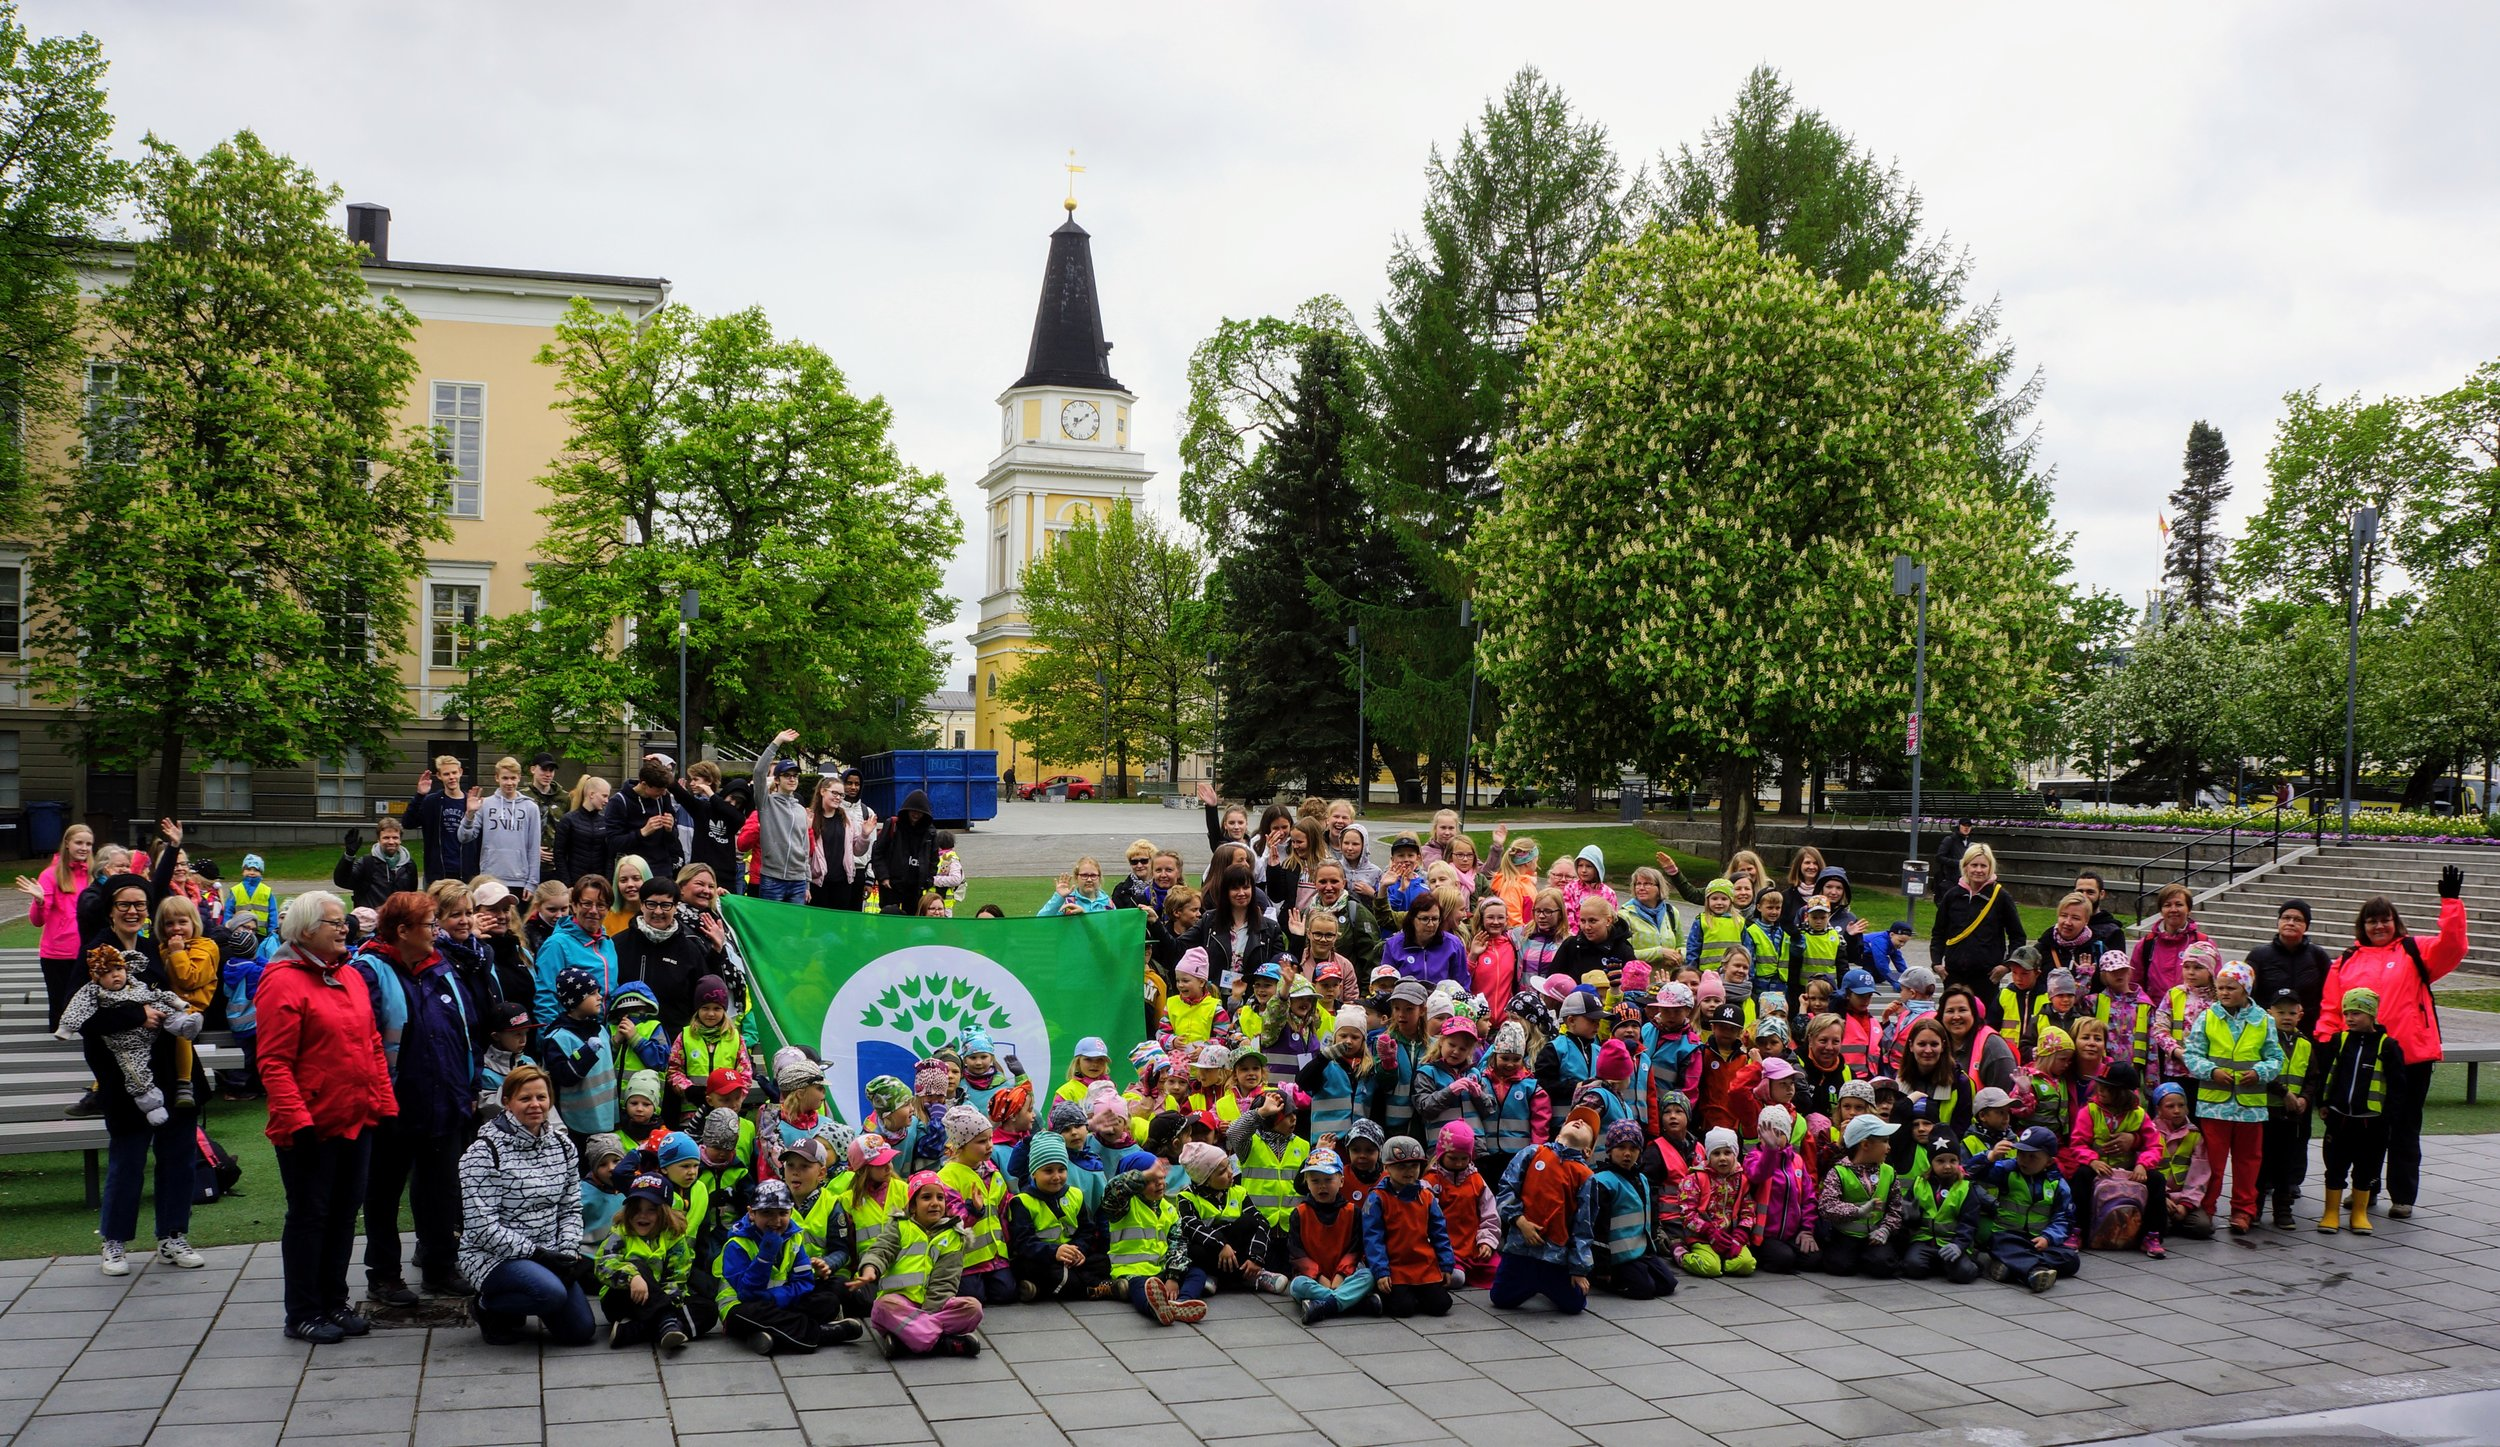 20th anniversary celebrations in Tampere in May 2019 Photo: Maija Ihantola